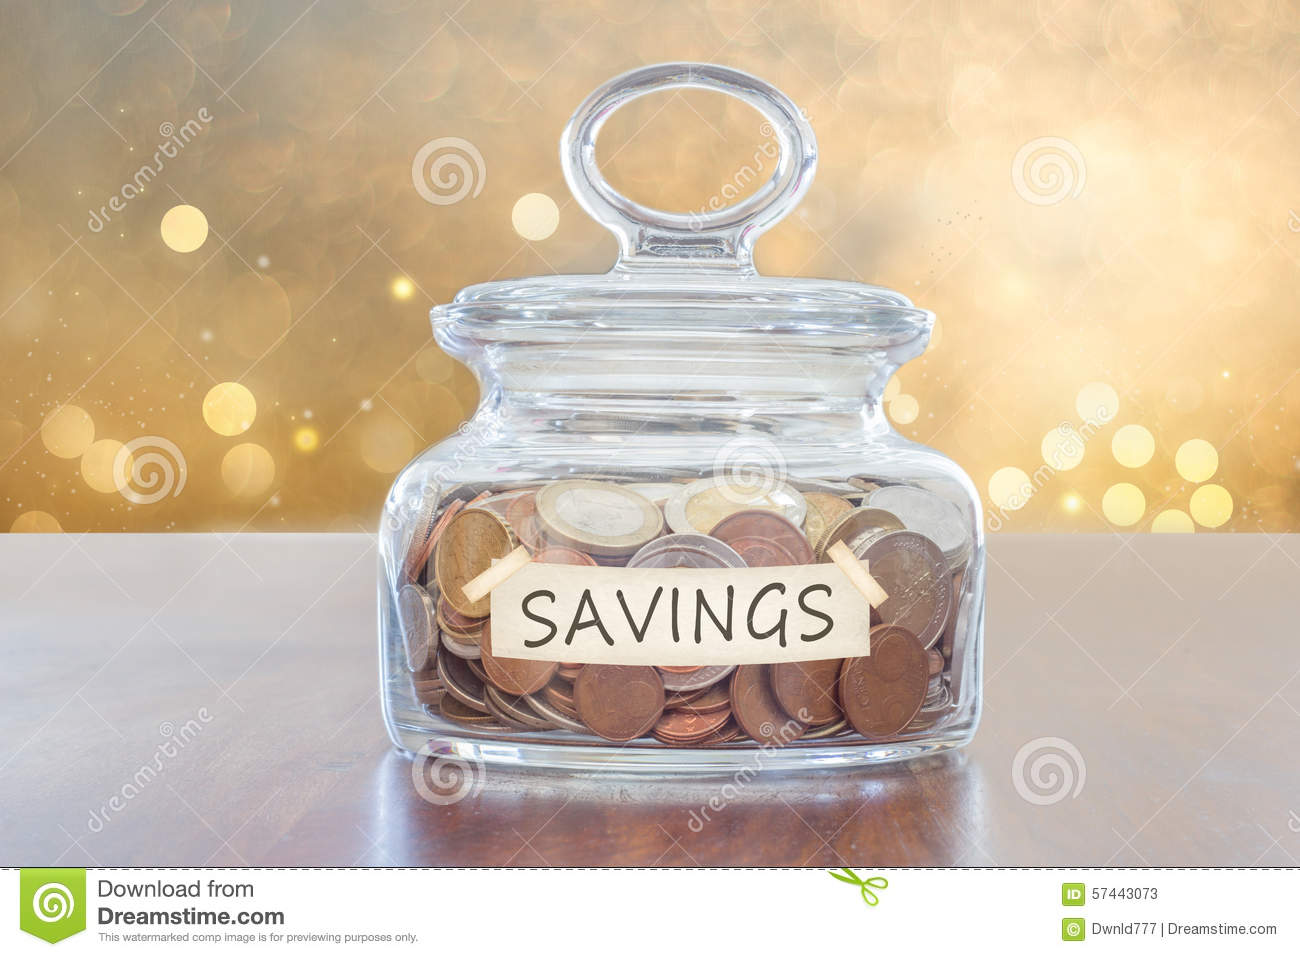 save the future essay It's better to enjoy your money when you earn it or it is save your money for the future use specific reasons and examples to support your opinion.